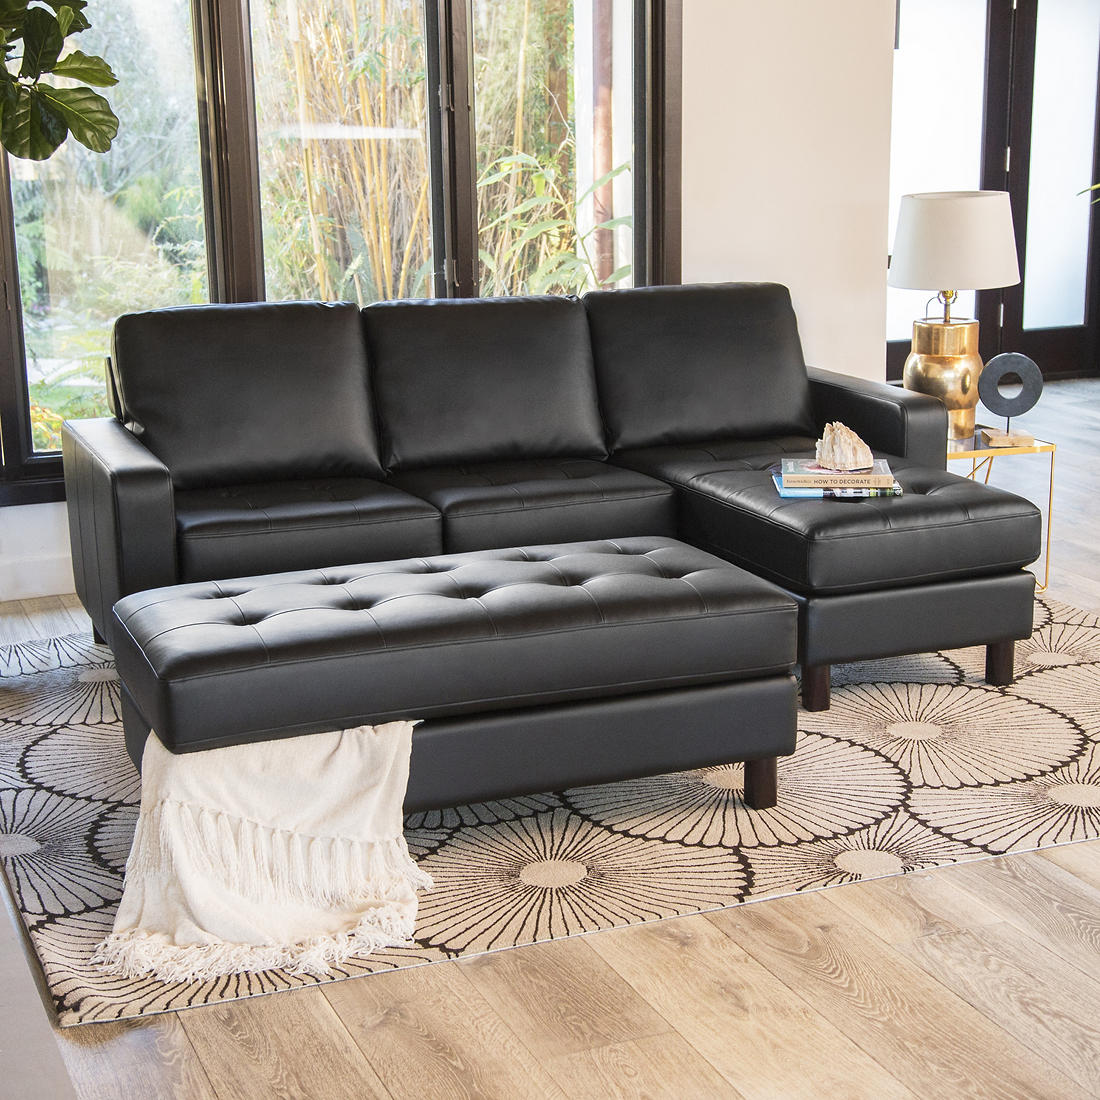 Pleasing Abbyson Living Emelia Reversible Sectional And Ottoman Black Ncnpc Chair Design For Home Ncnpcorg